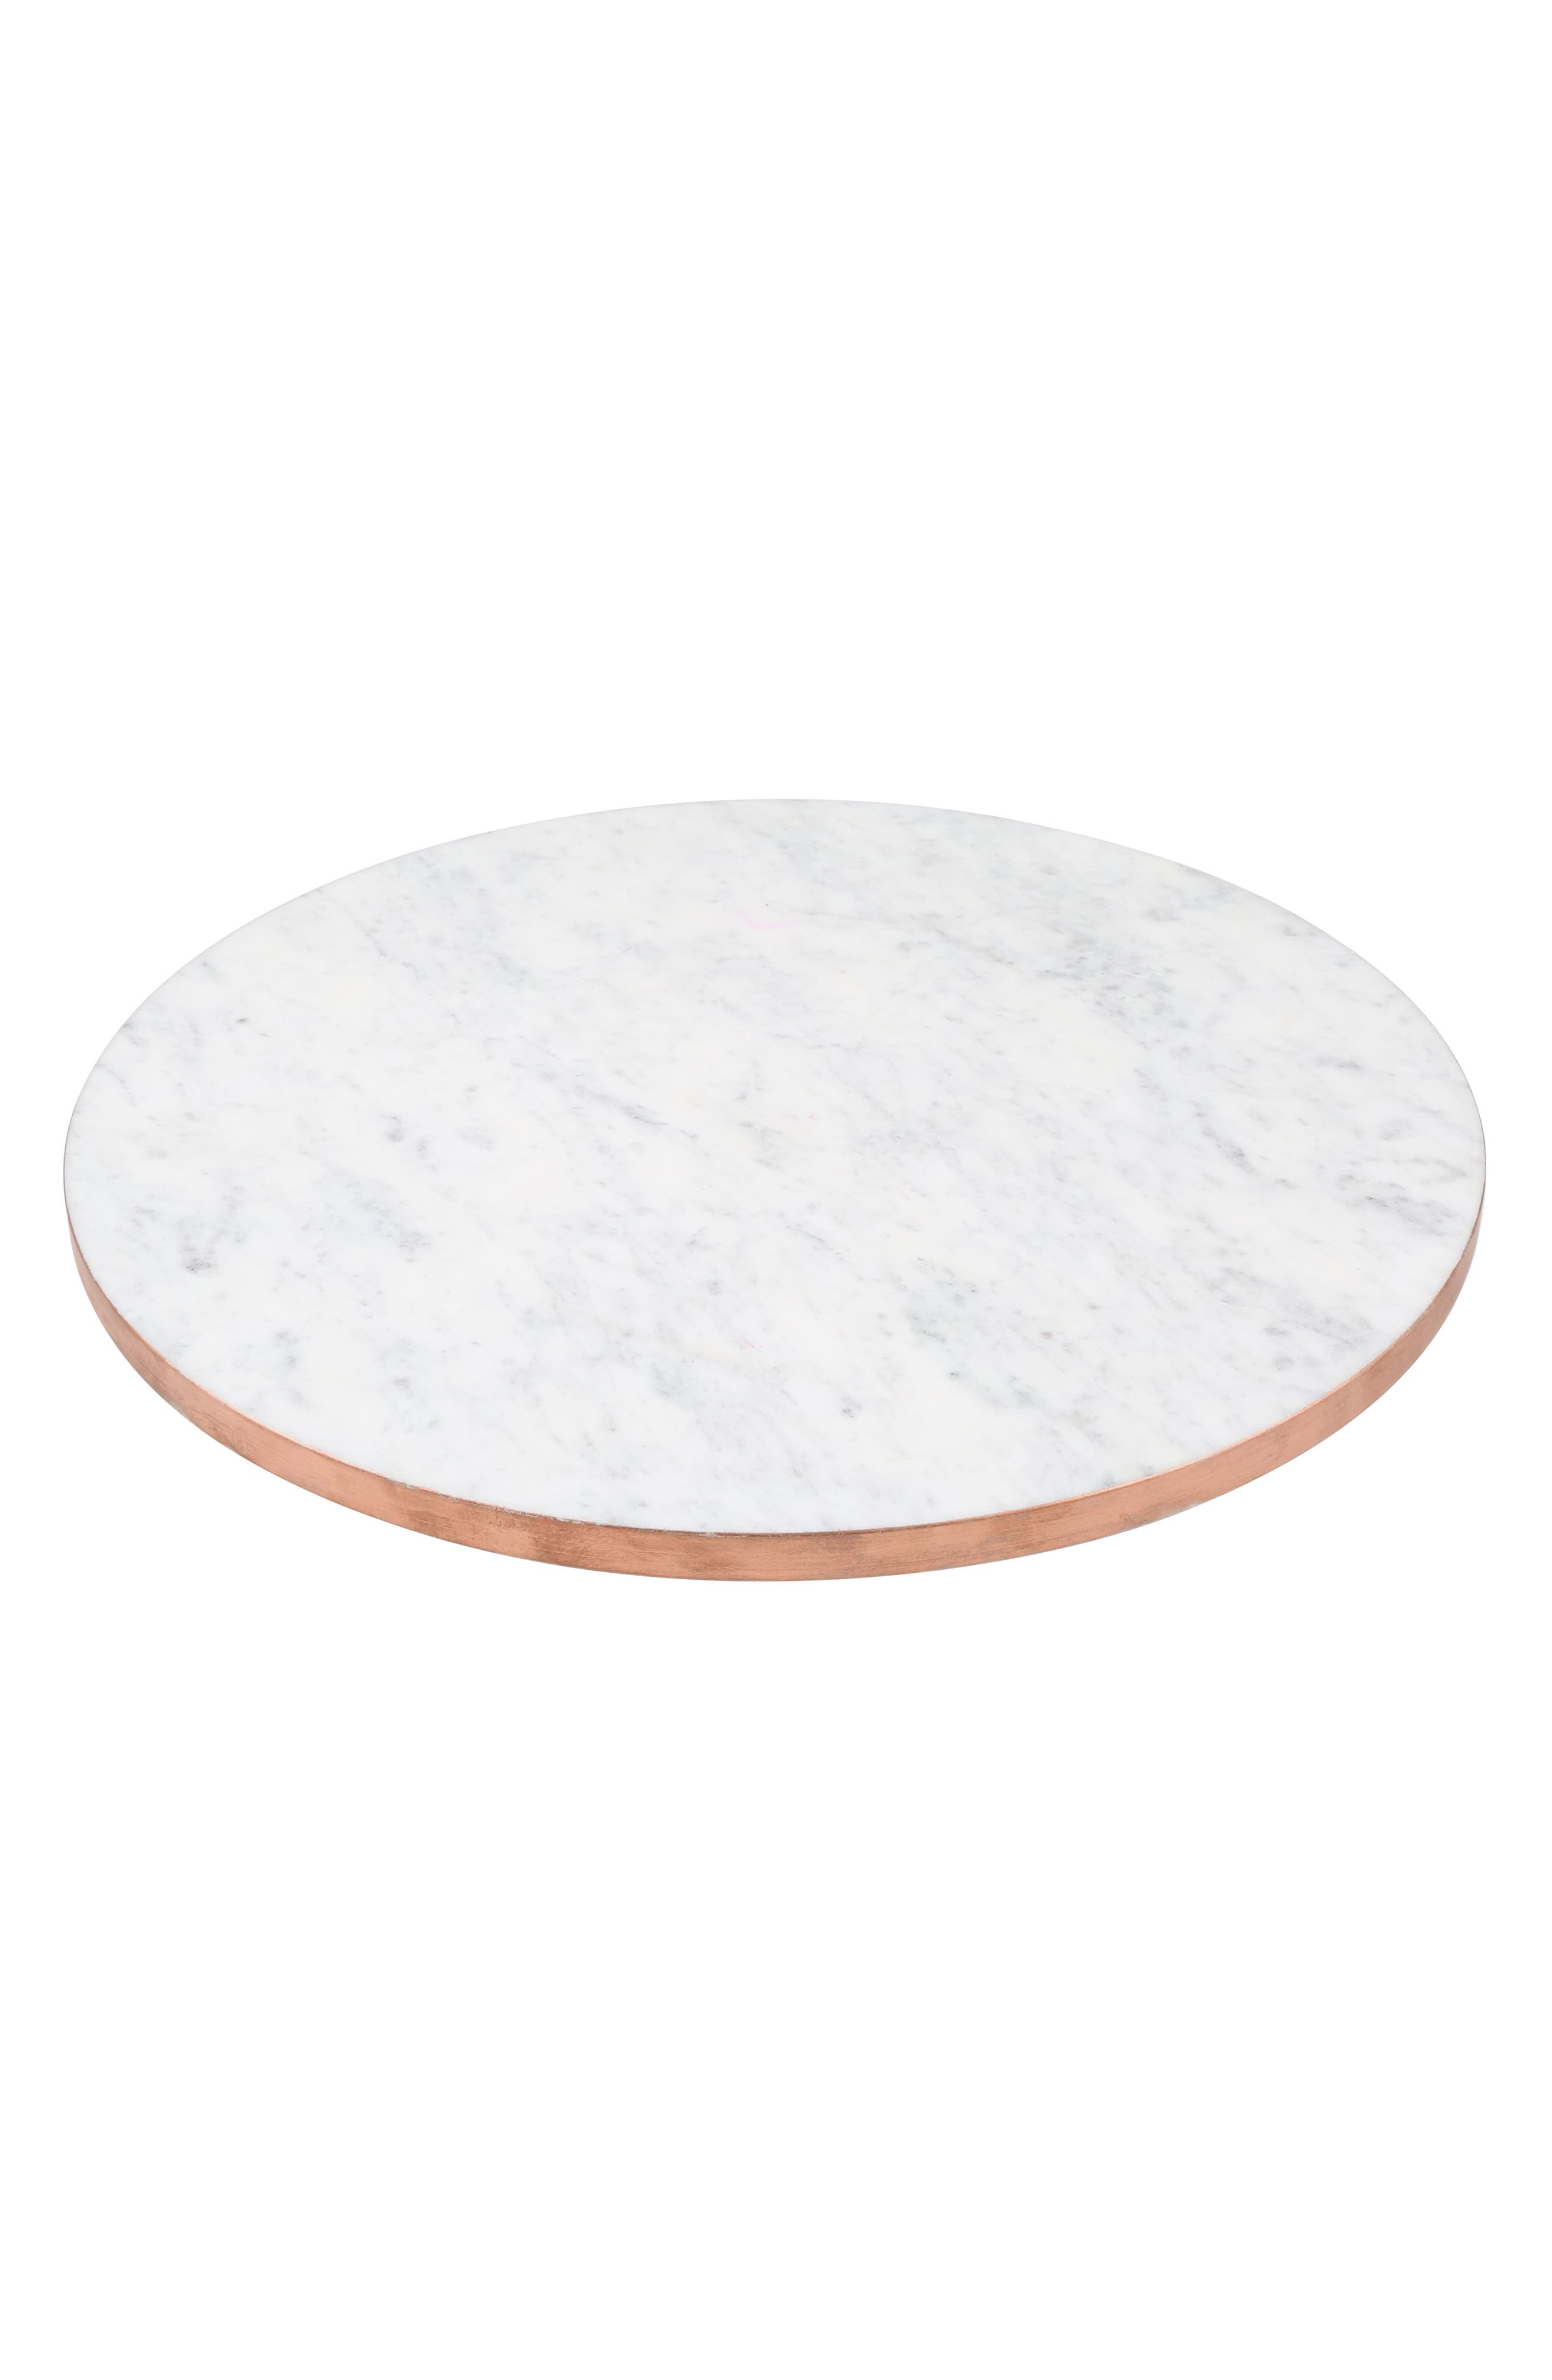 main image copper edge marble lazy susan